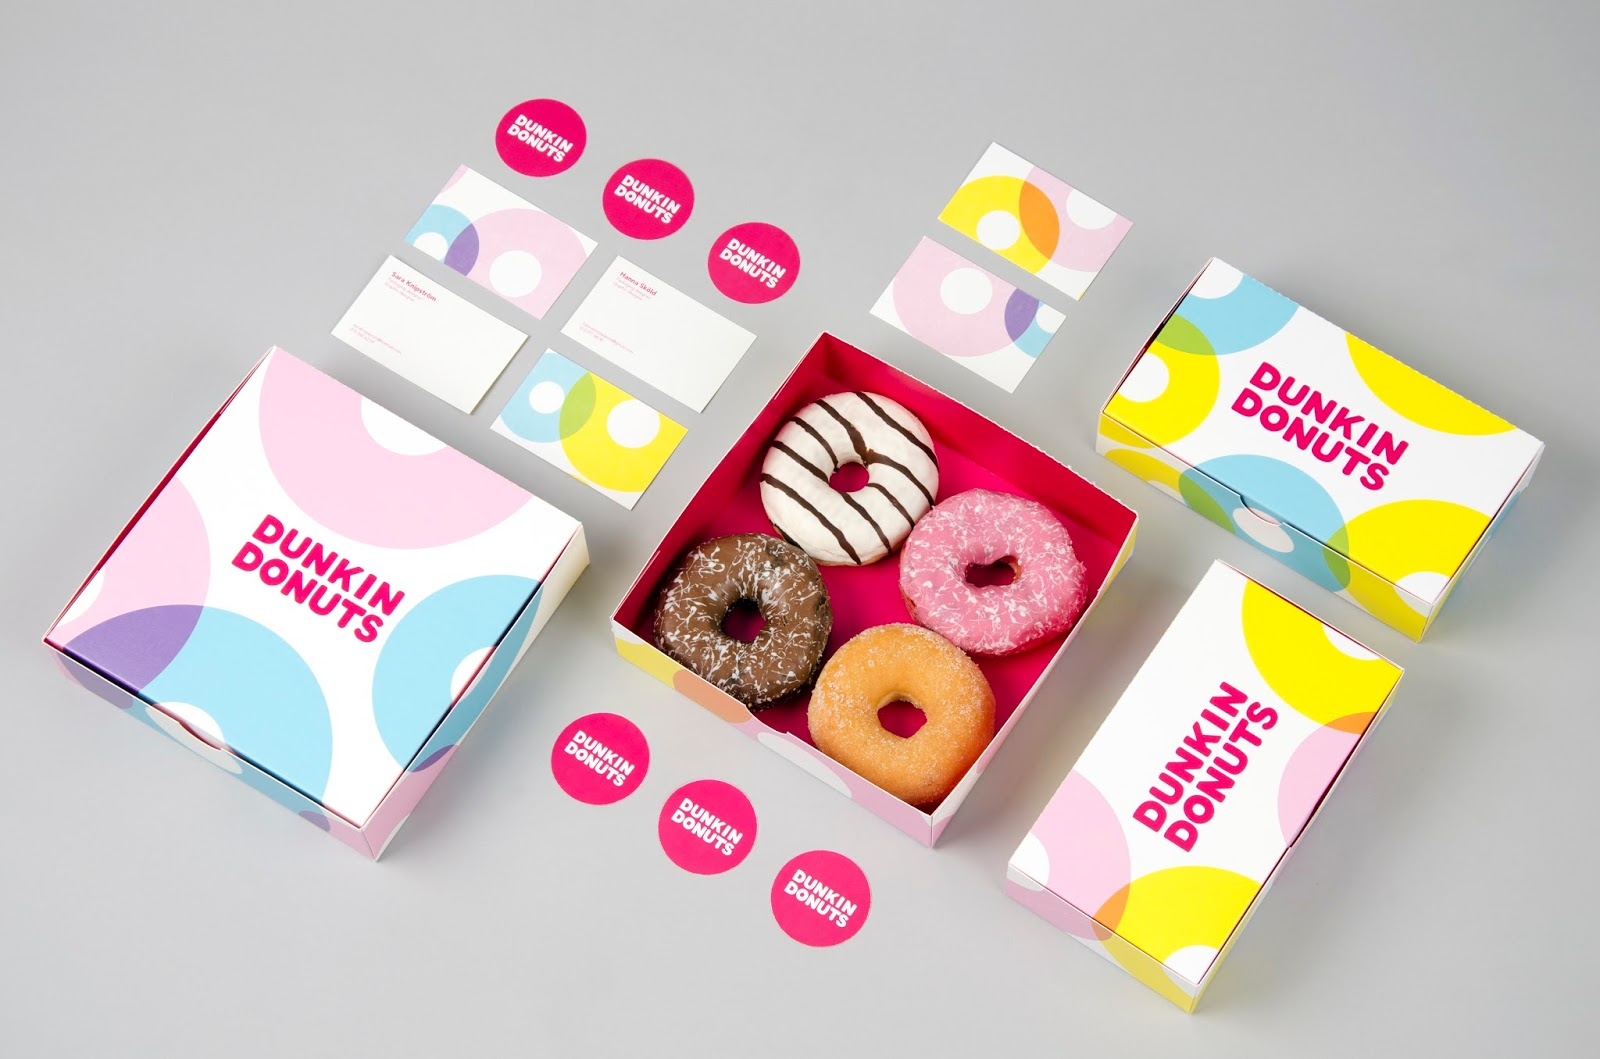 Modern Mug Dunkin Donuts Student Project On Packaging Of The World